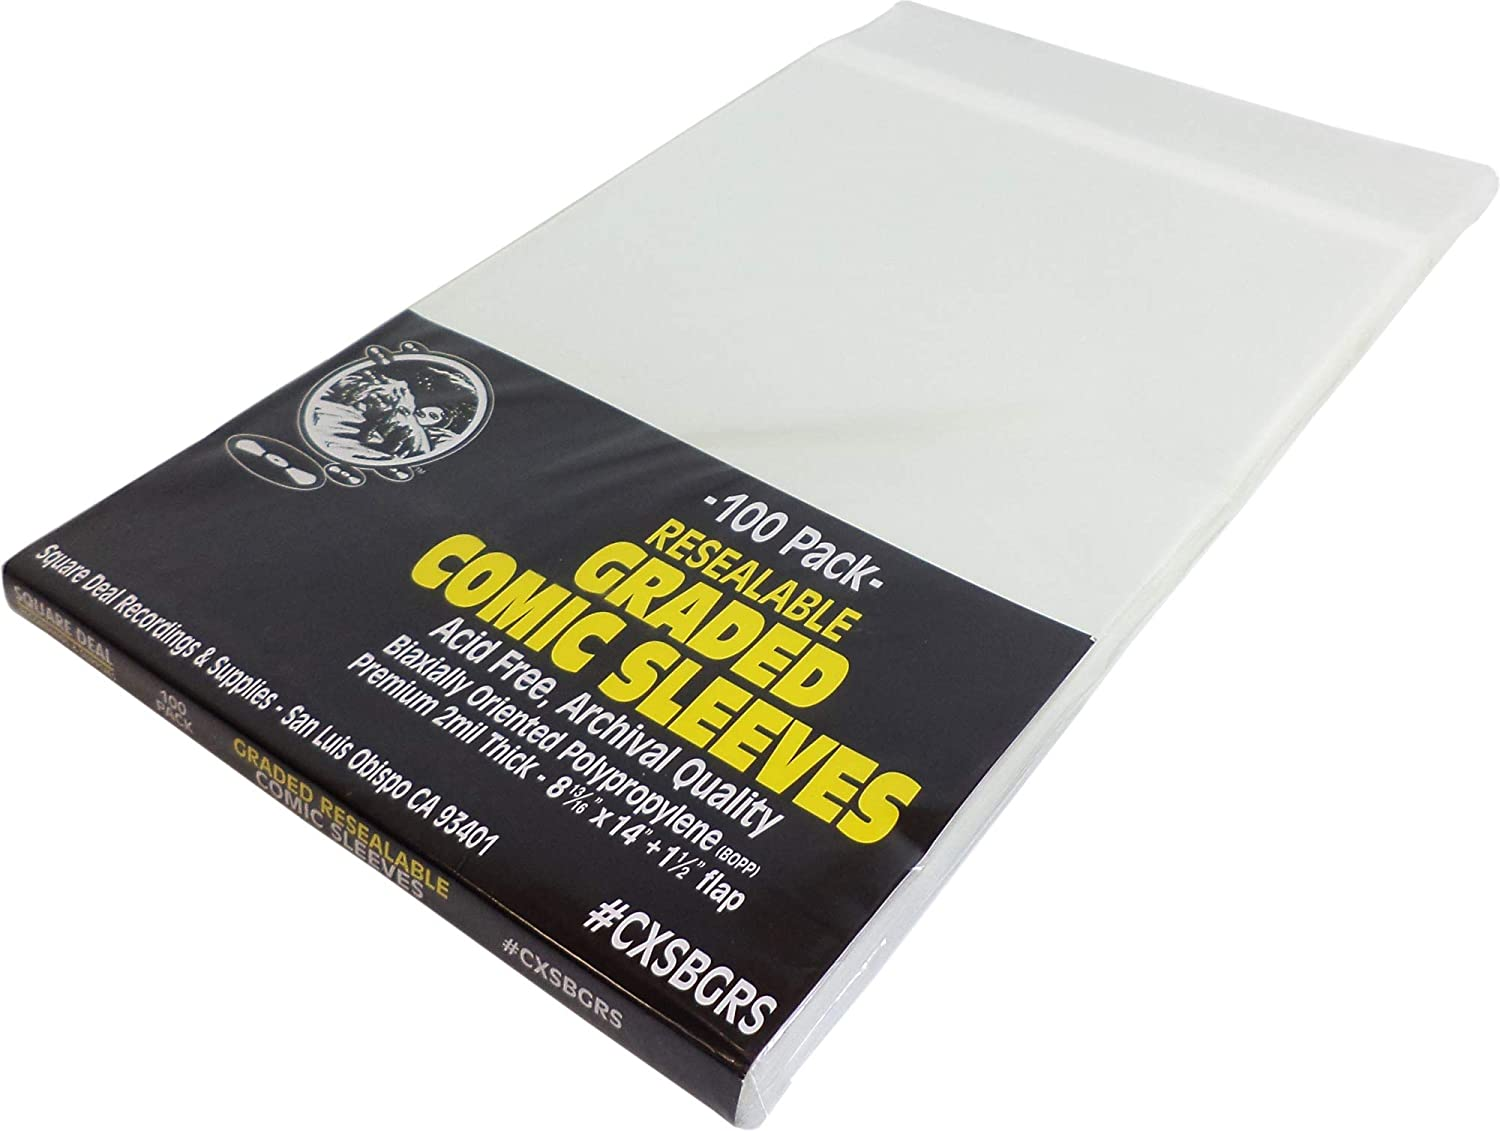 Graded Comic Book Sleeves - Crystal Clear, Resealable, Archival Quality - Set of 100 #CXSBGRS